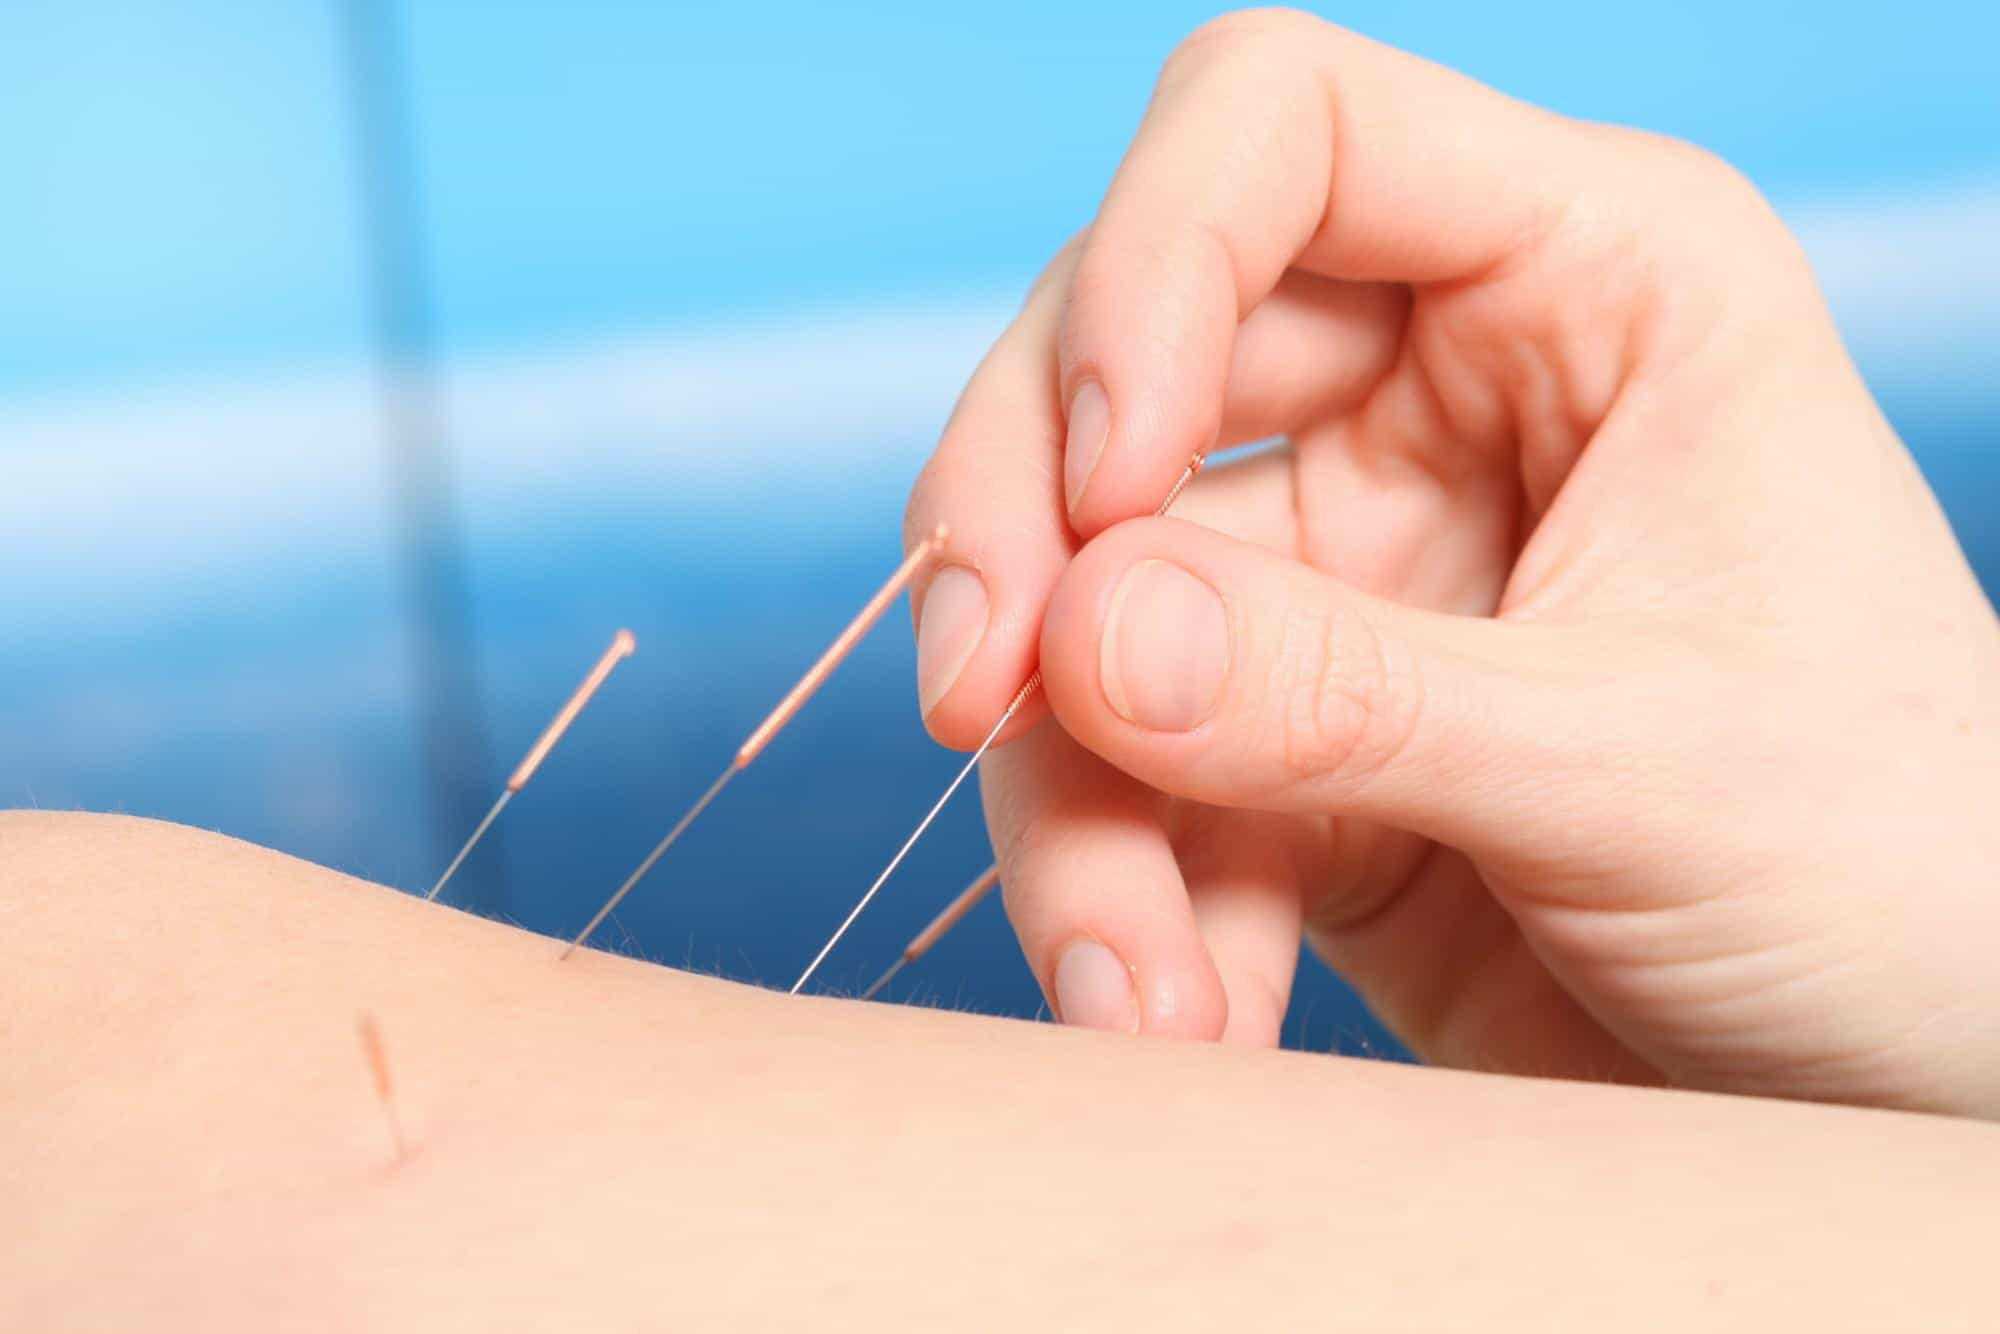 Acupuncture Center Toronto treats all health conditions with Chinese Medicine